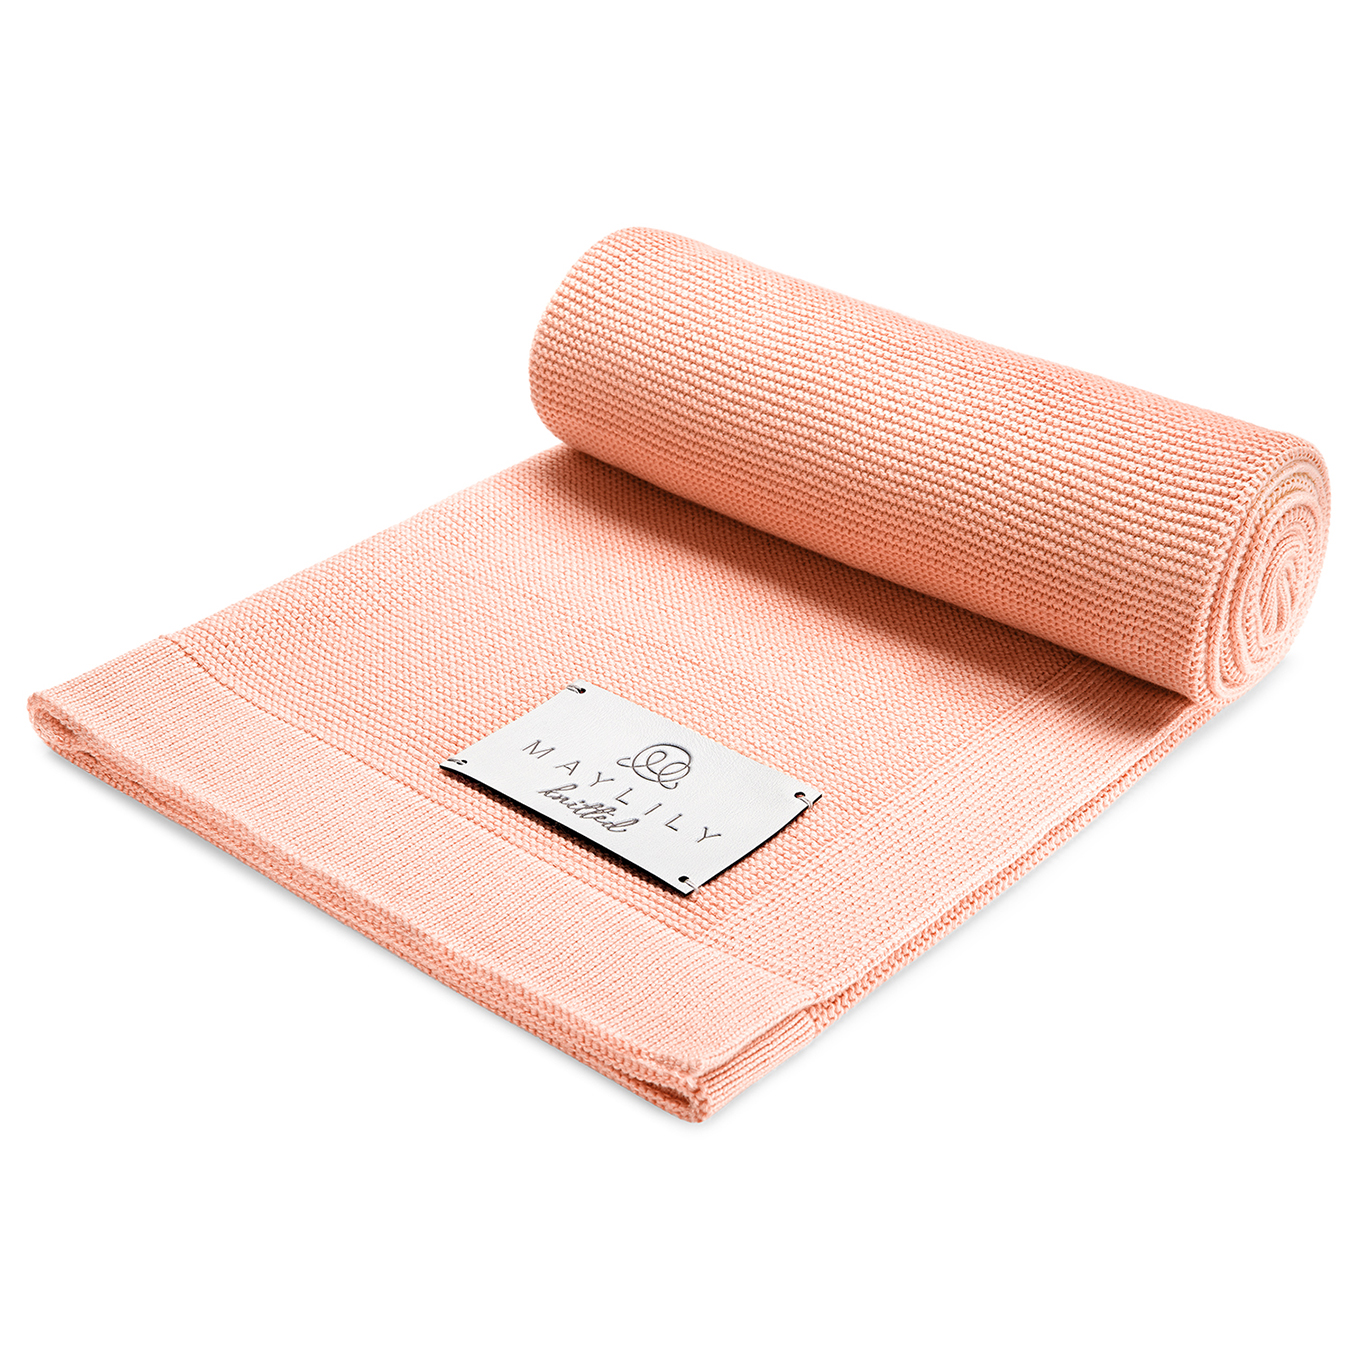 Bamboolove blanket Coral